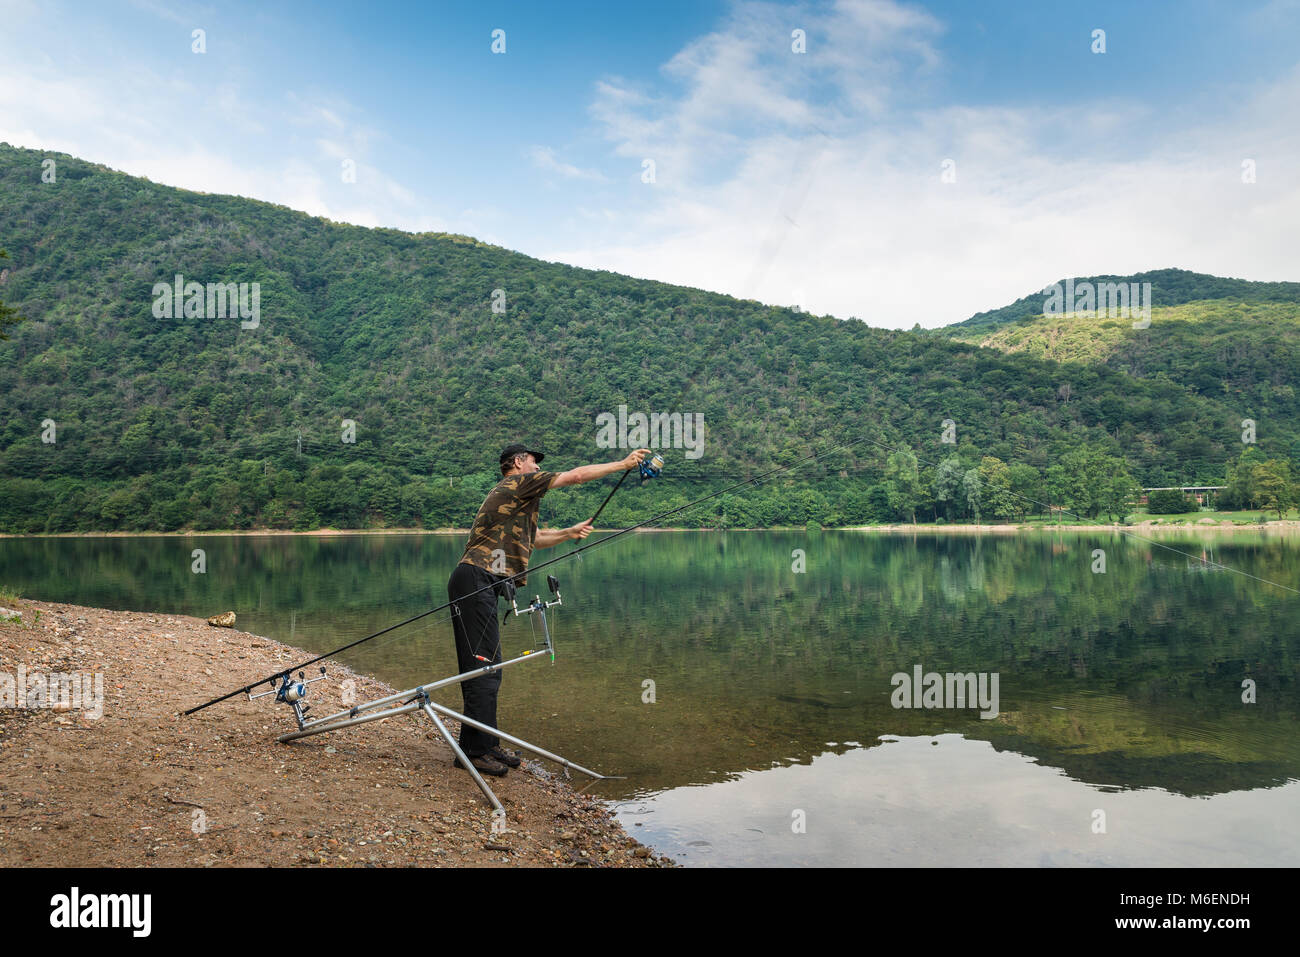 Fishing adventures, carp fishing. Angler with camouflage t-shirt and a fishing rod in his hand, is casting the bait - Stock Image